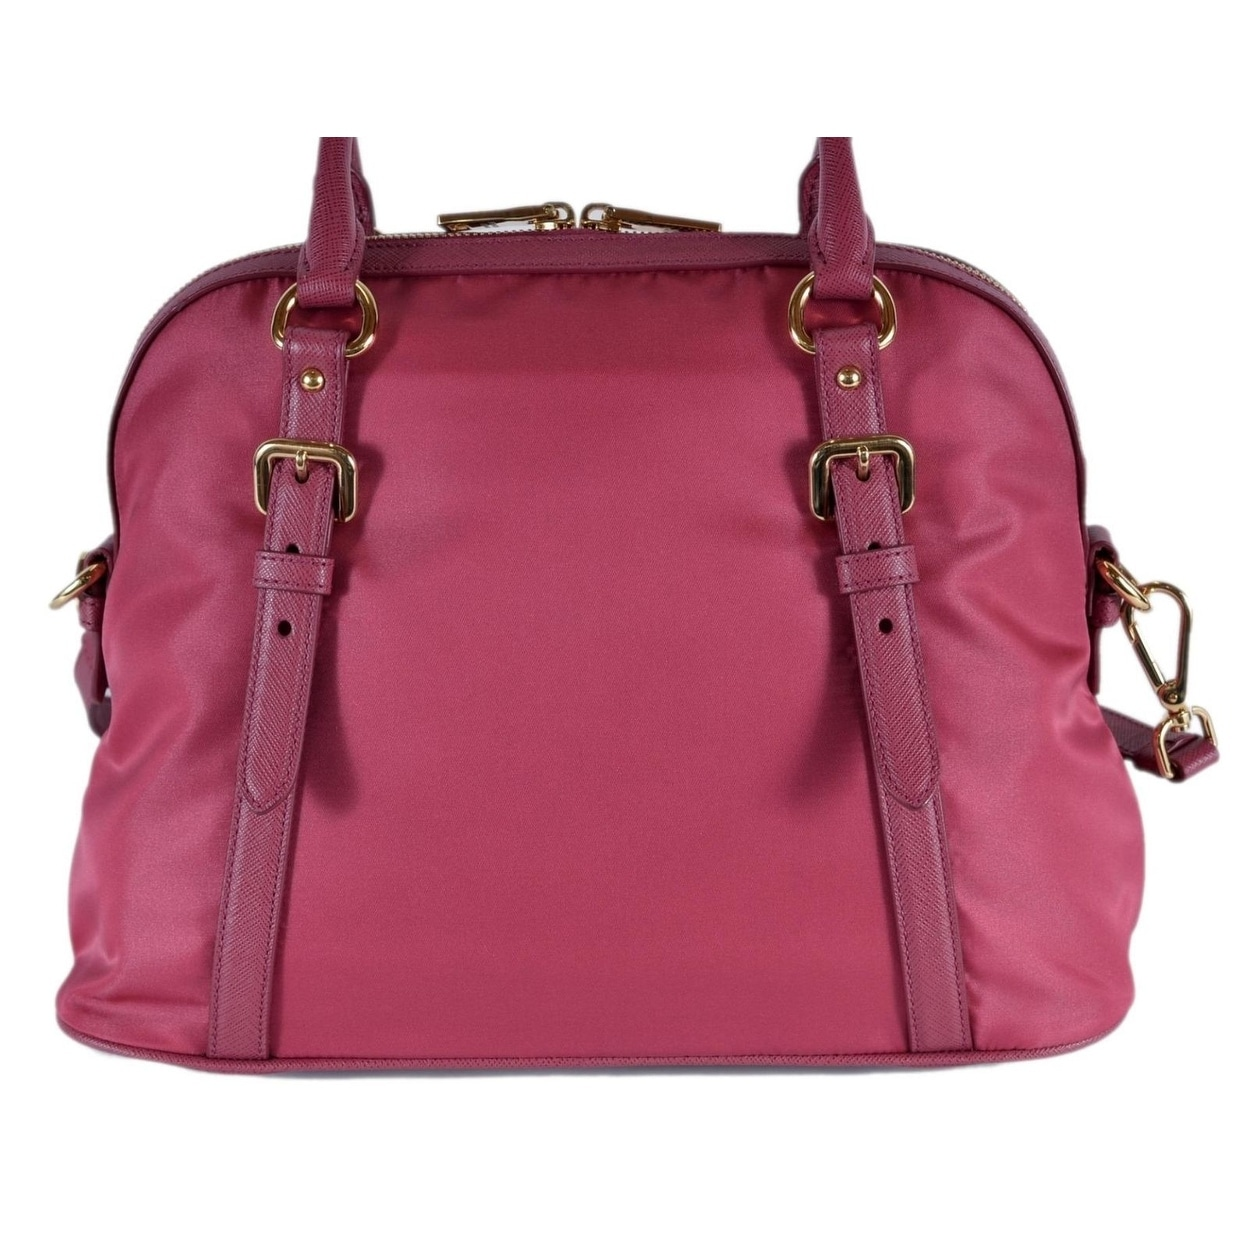 e13e242f1e Shop Prada 1BB013 Tessuto Ibisco Pink Nylon Bauletto Satchel Purse W/Strap  - On Sale - Free Shipping Today - Overstock - 26042646